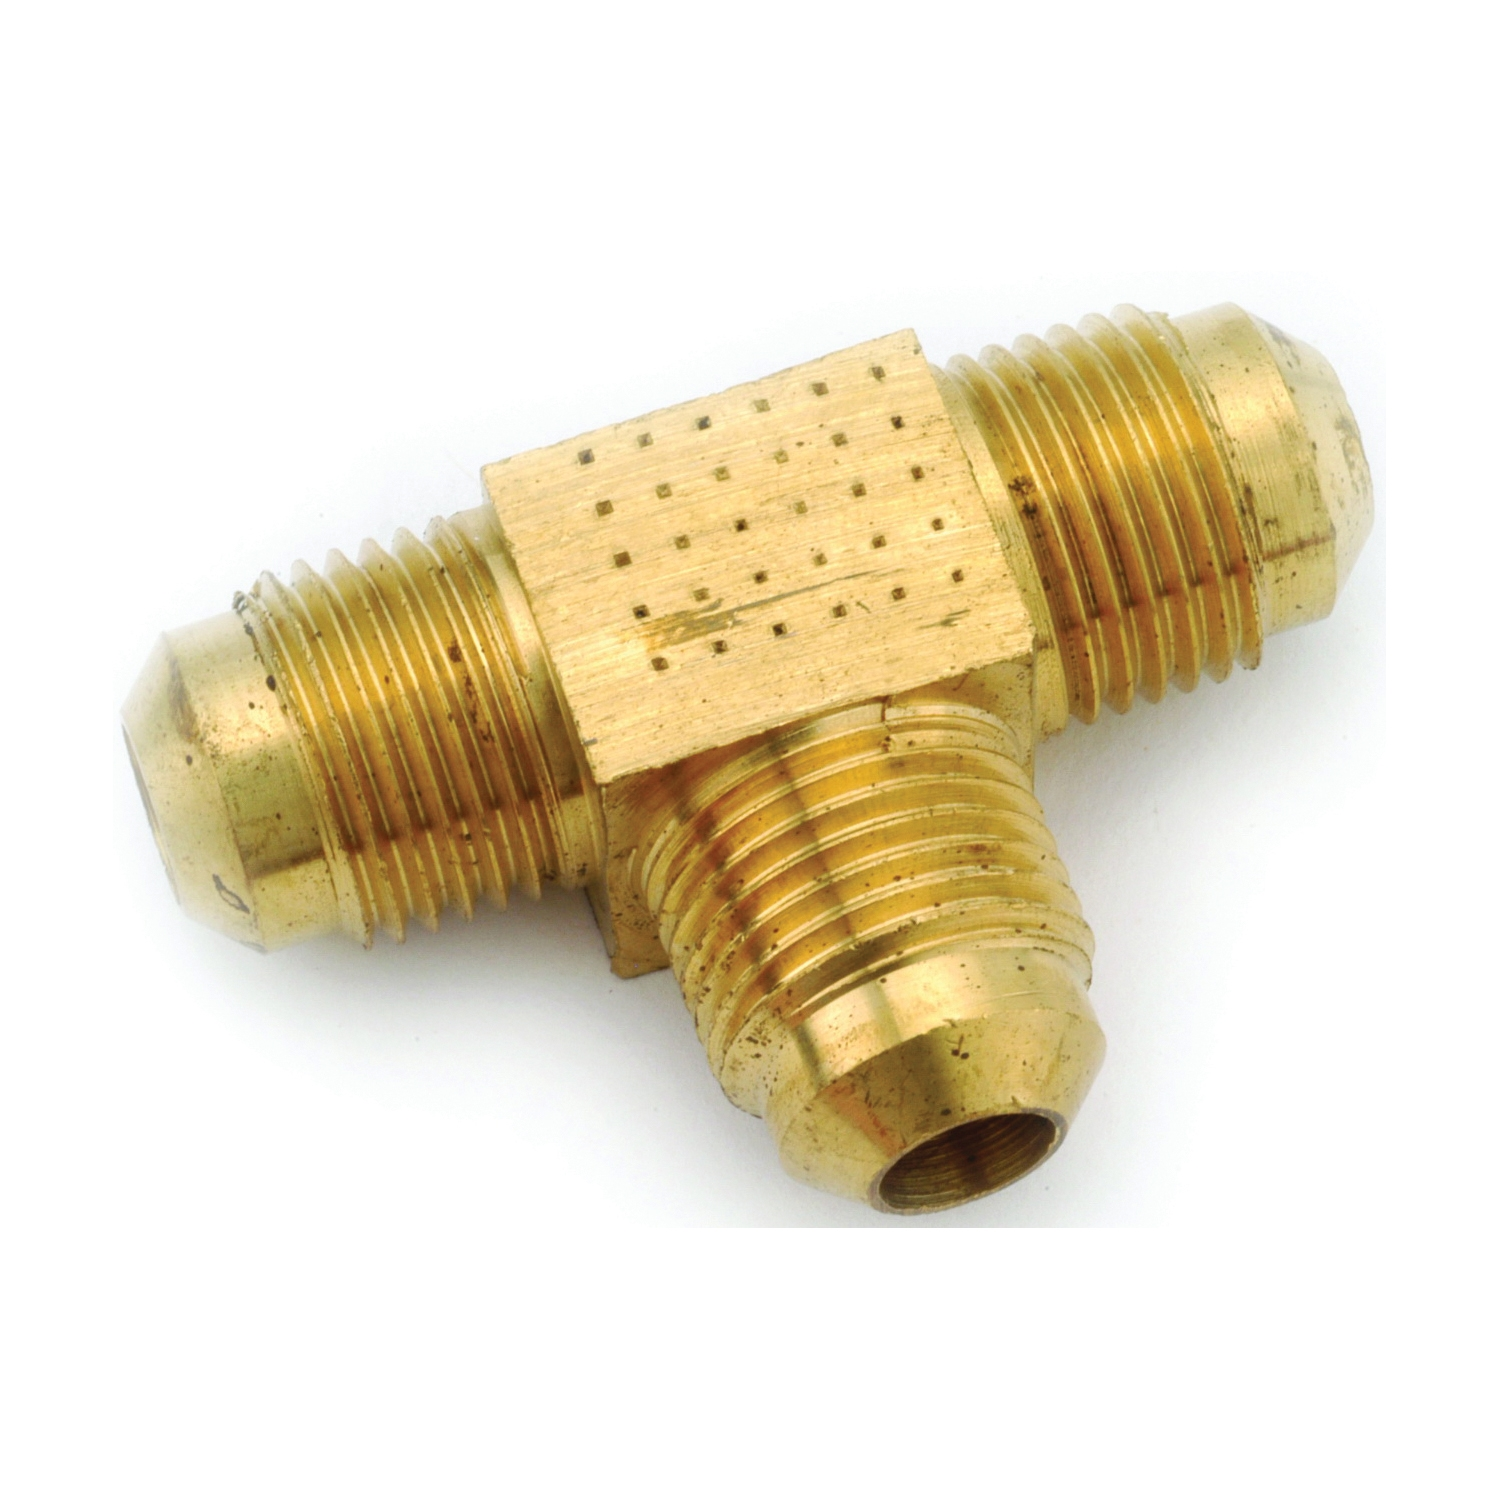 Picture of Anderson Metals 754044-05 Tube Union Tee, 5/16 in, Flare, Brass